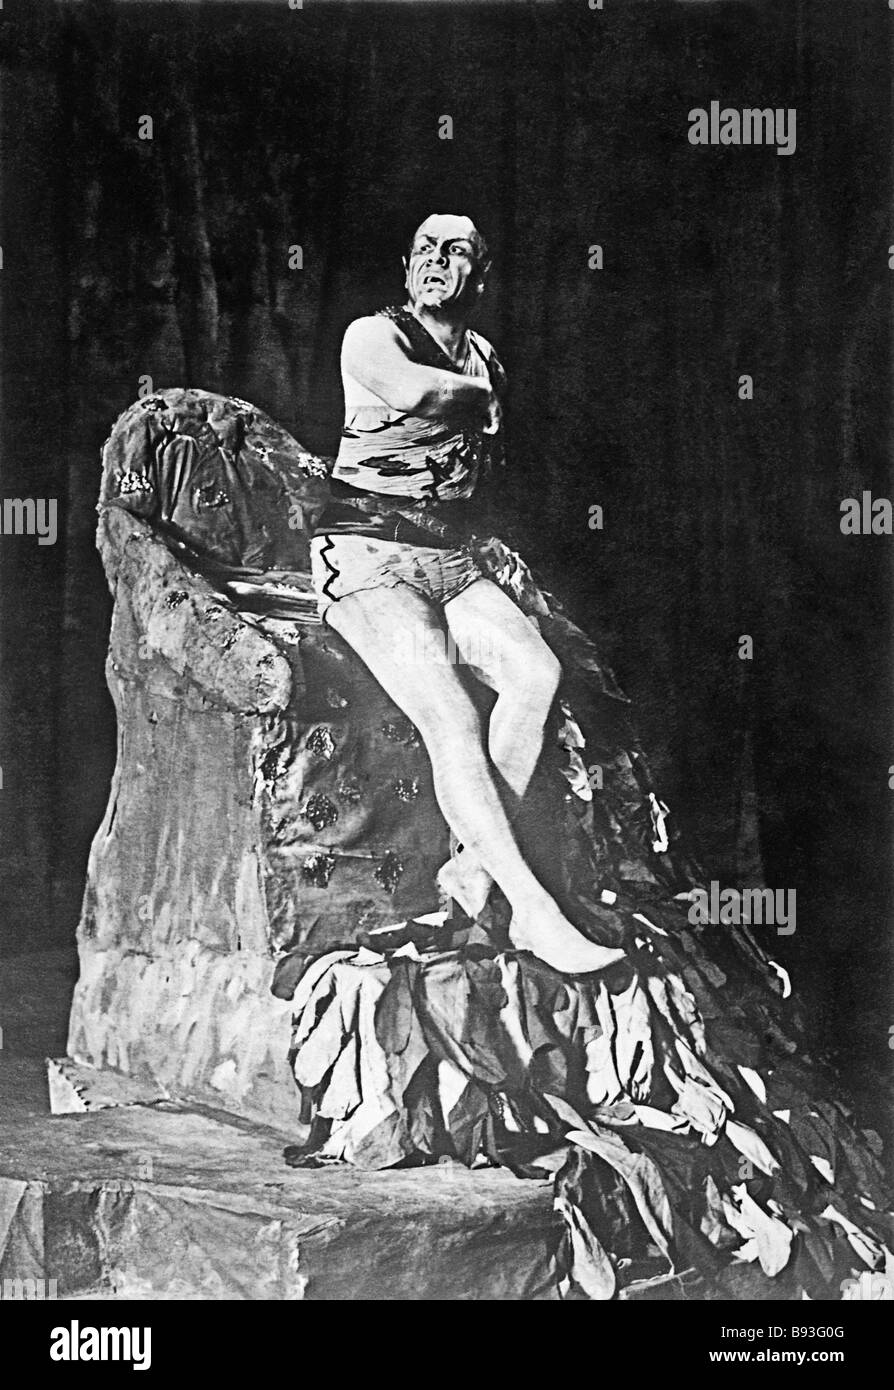 Fyodor Chaliapin as Mephistopheles in the opera Faust by Gounod - Stock Image